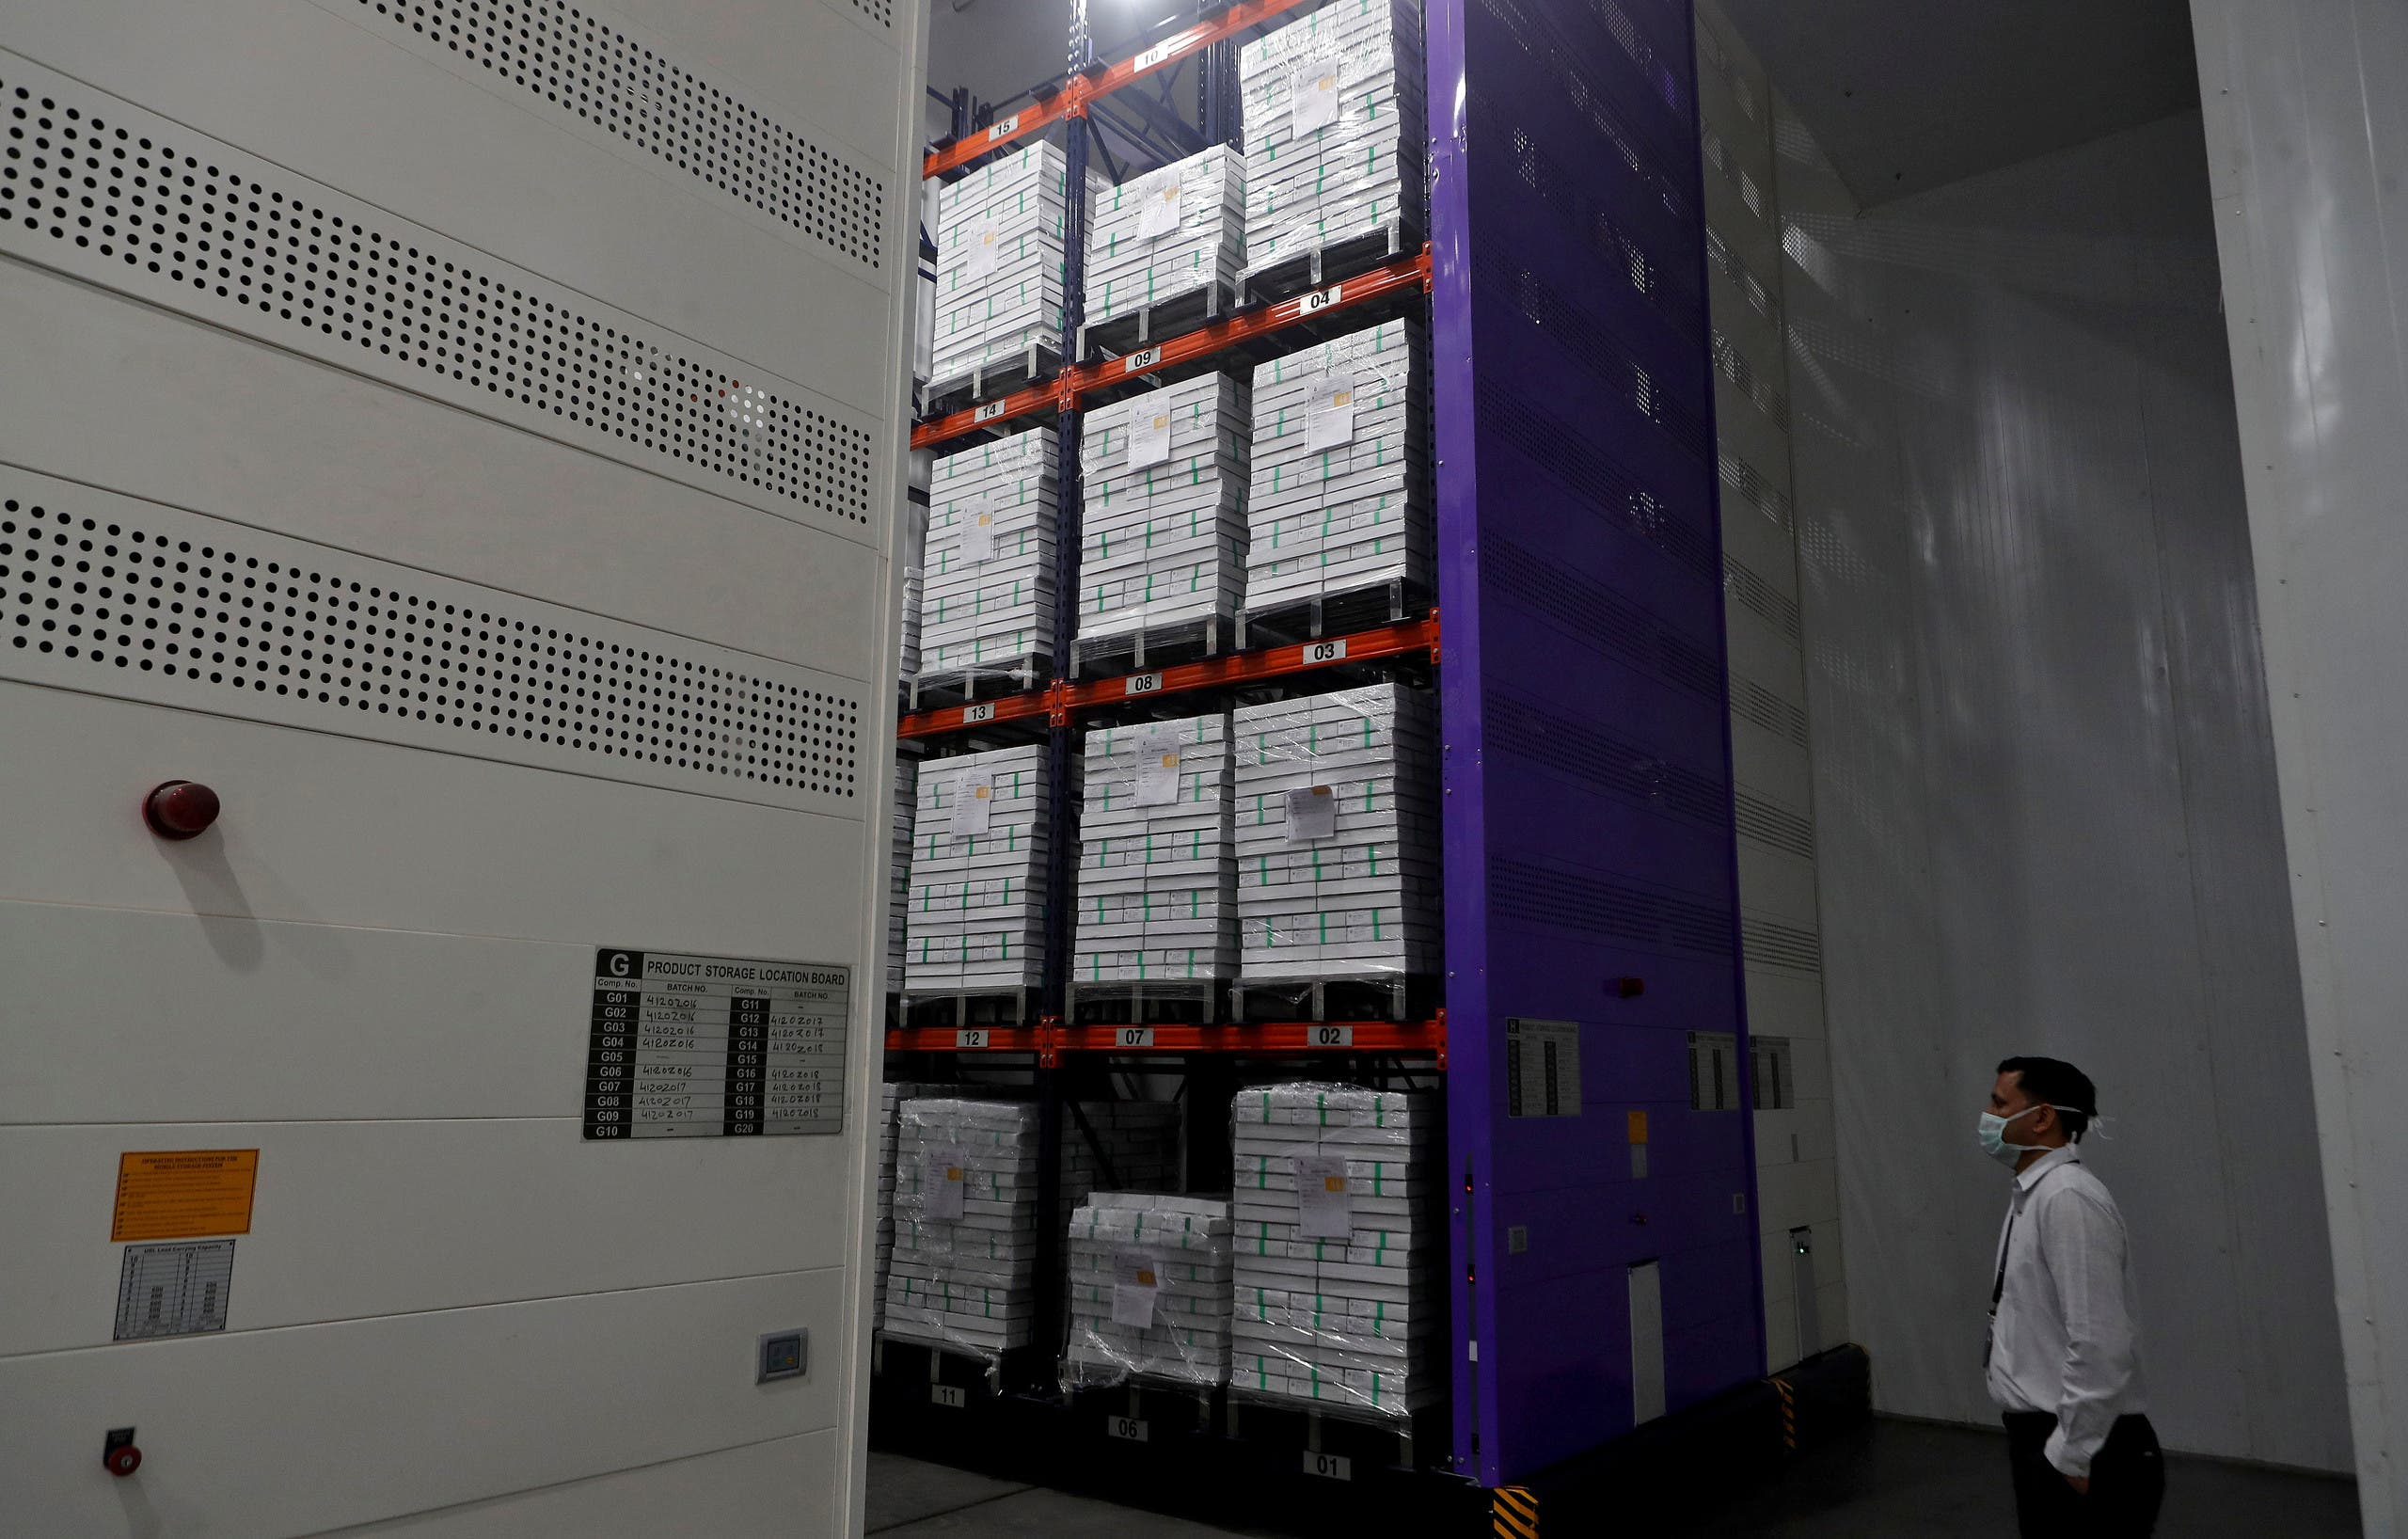 A man stands next to boxes containing the vials of AstraZeneca's COVISHIELD, coronavirus disease (COVID-19) vaccine, inside a cold room at the Serum Institute of India, Pune, India. (File photo: Reuters)